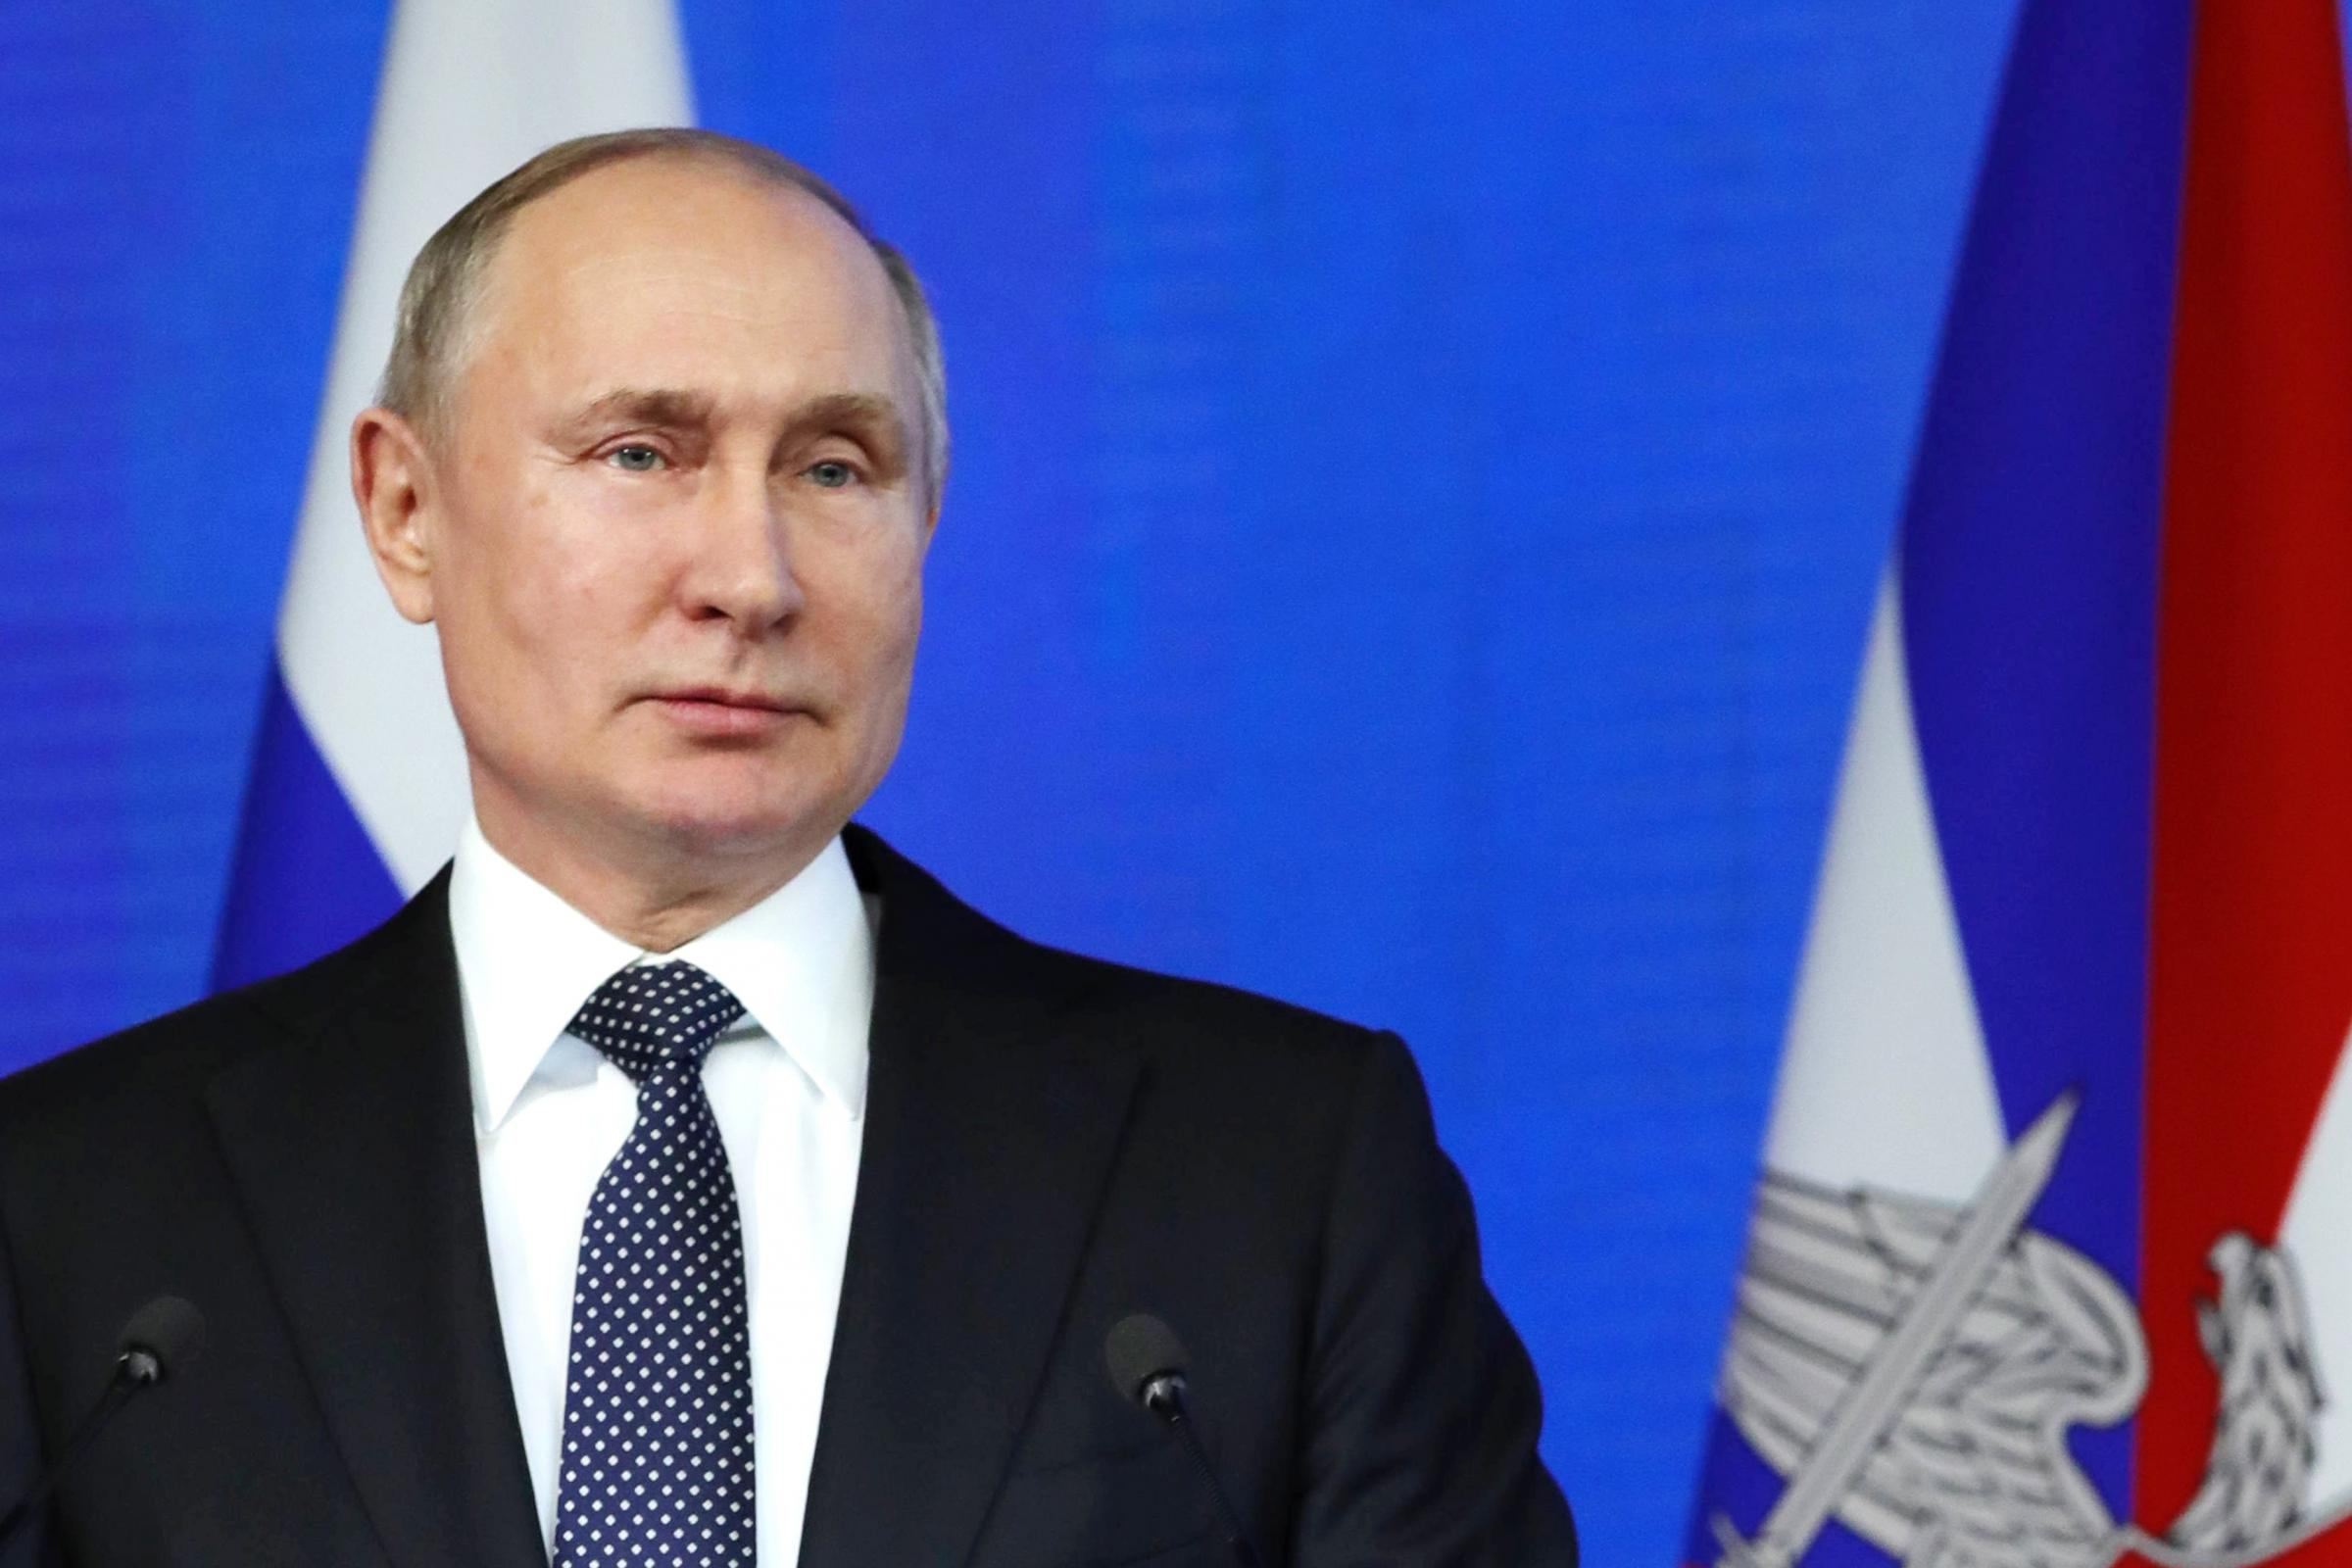 Putin sees SNP as threat and will oppose independence, says international analyst